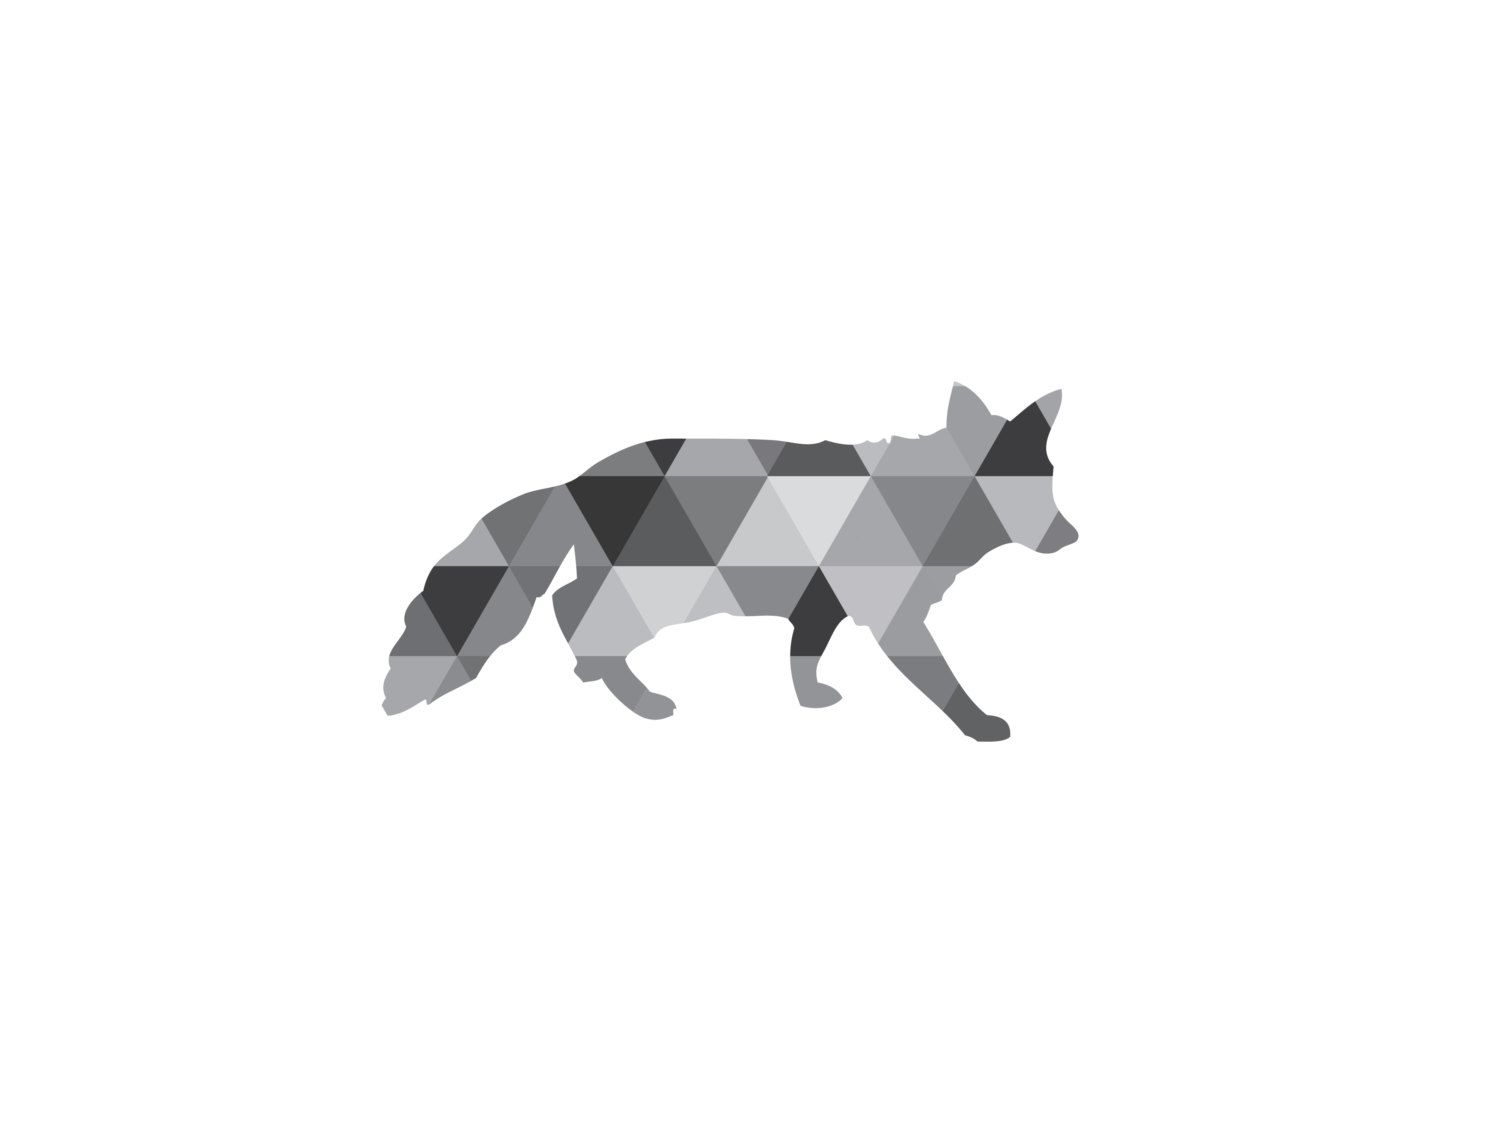 Fox wall art geometric black white grayscale от melindawooddesigns